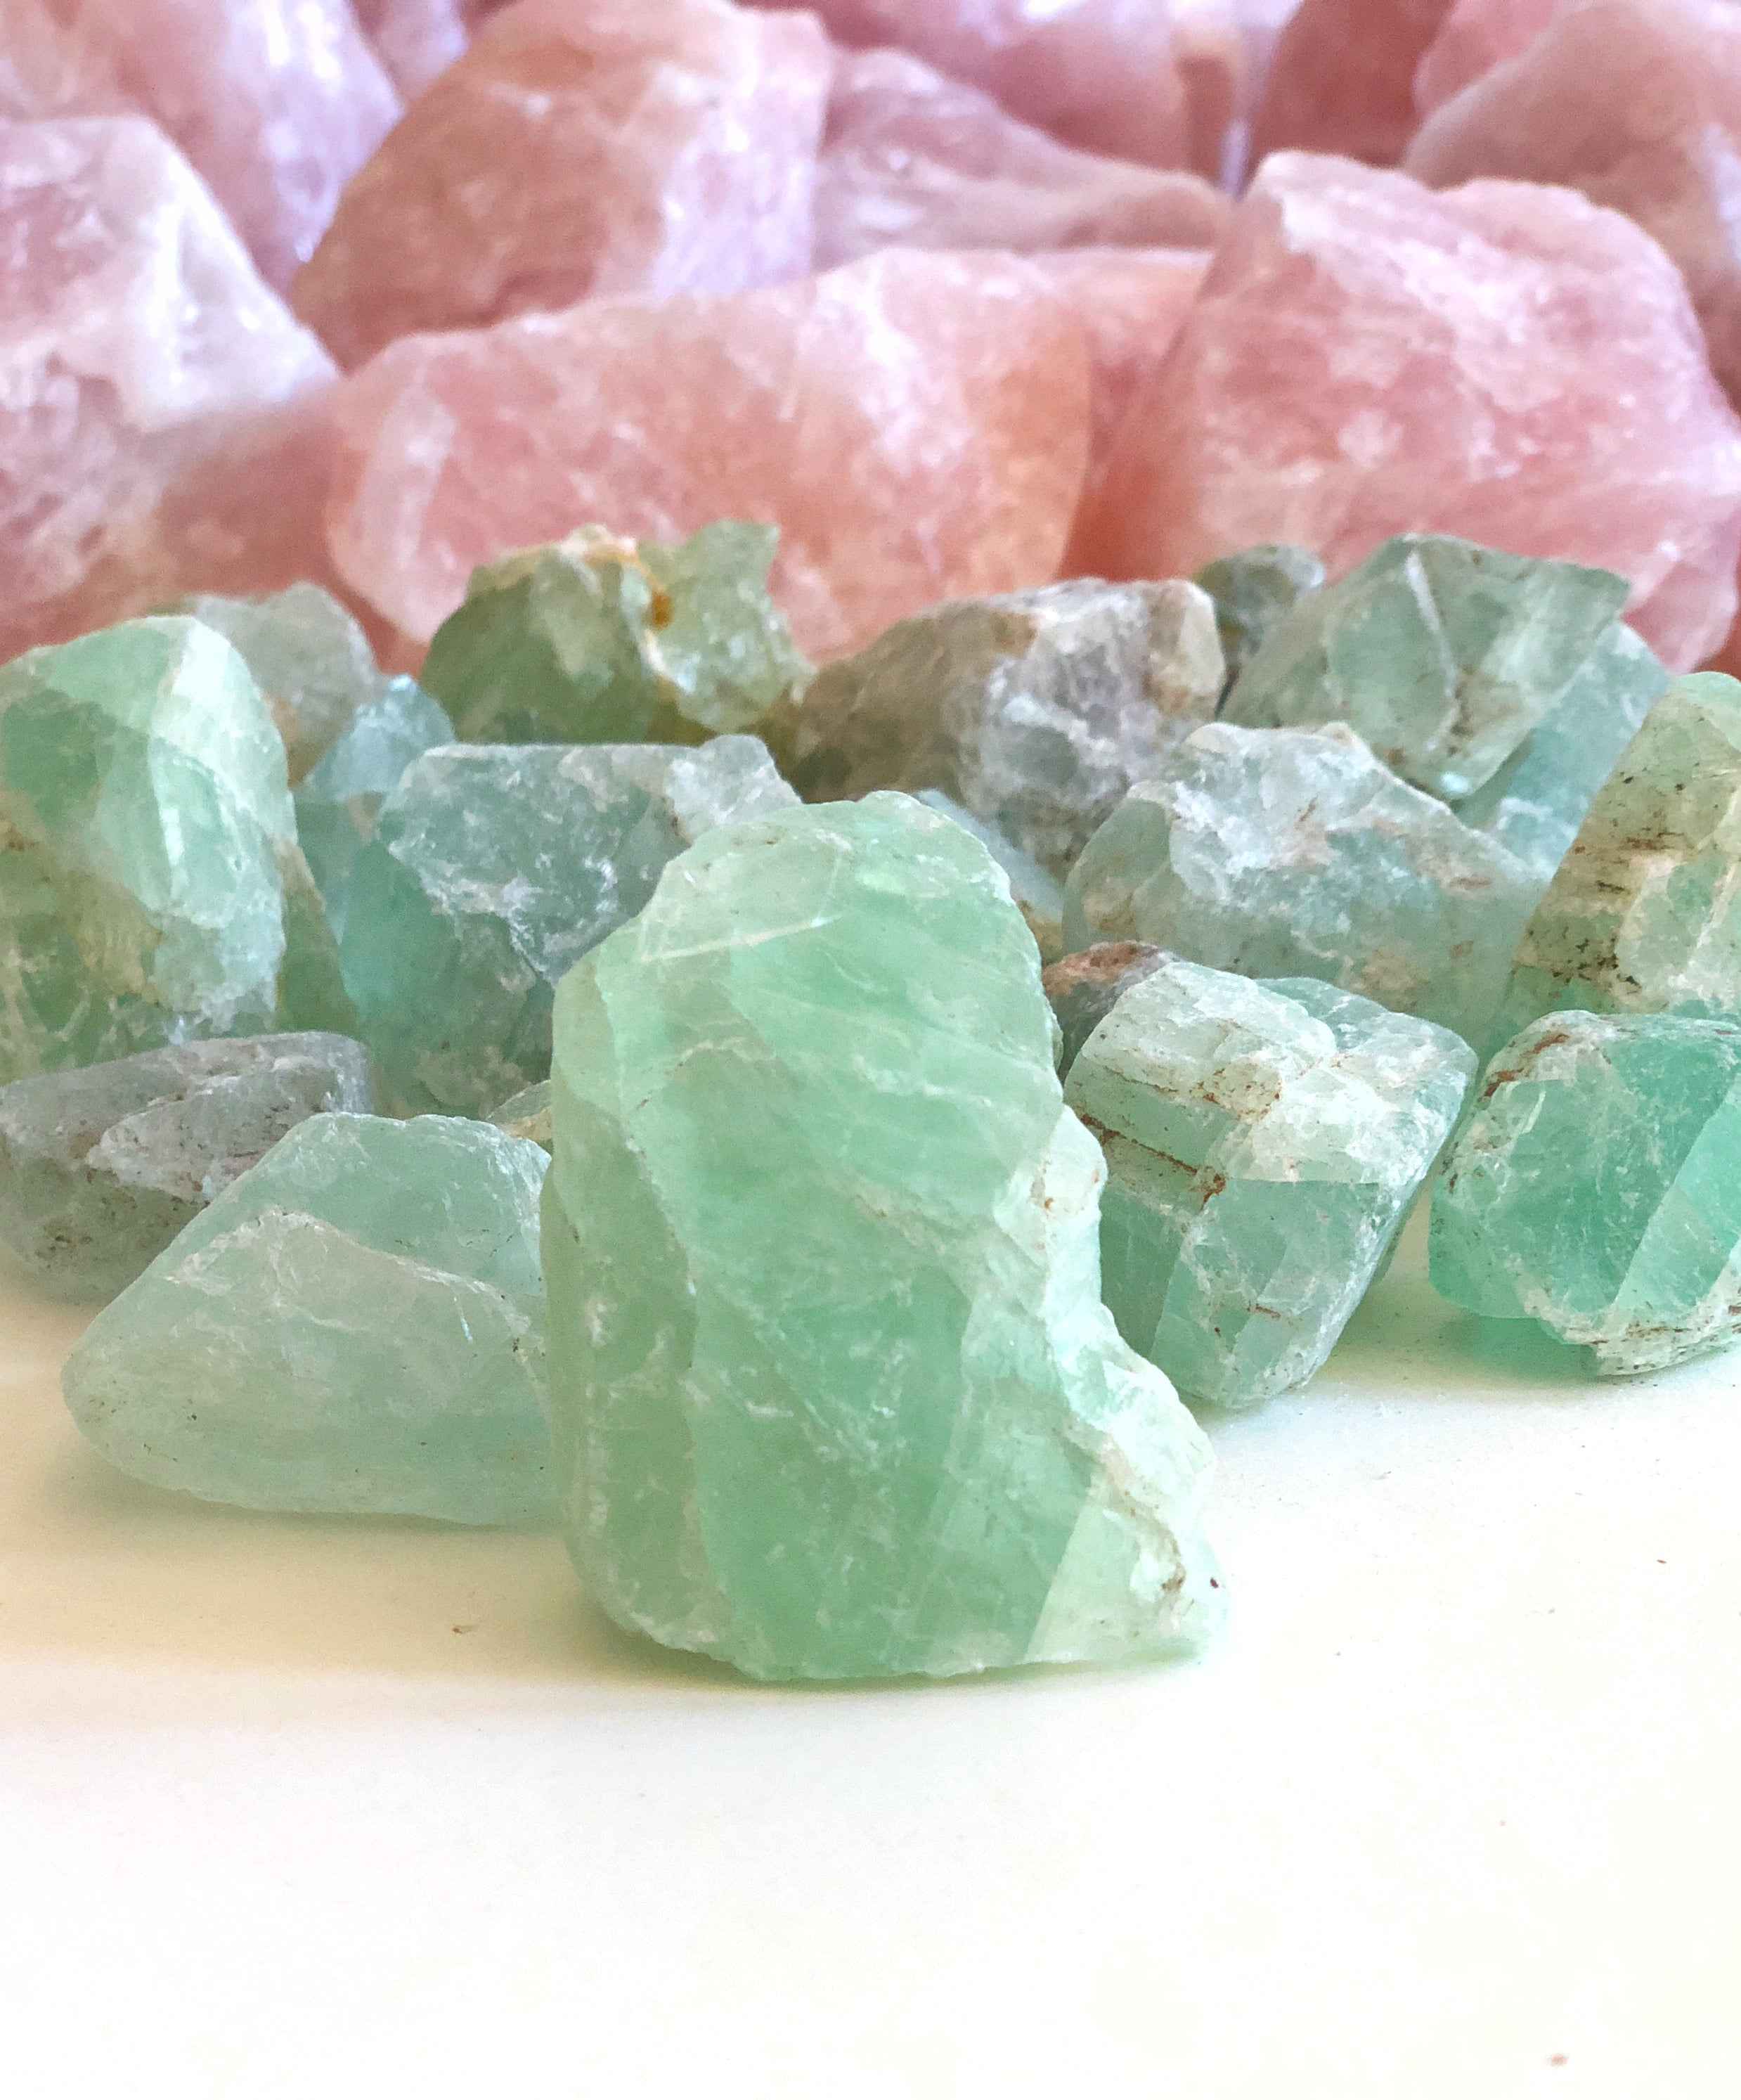 LITTLE PAPER LANE Crystals- Raw Green Fluorite $6